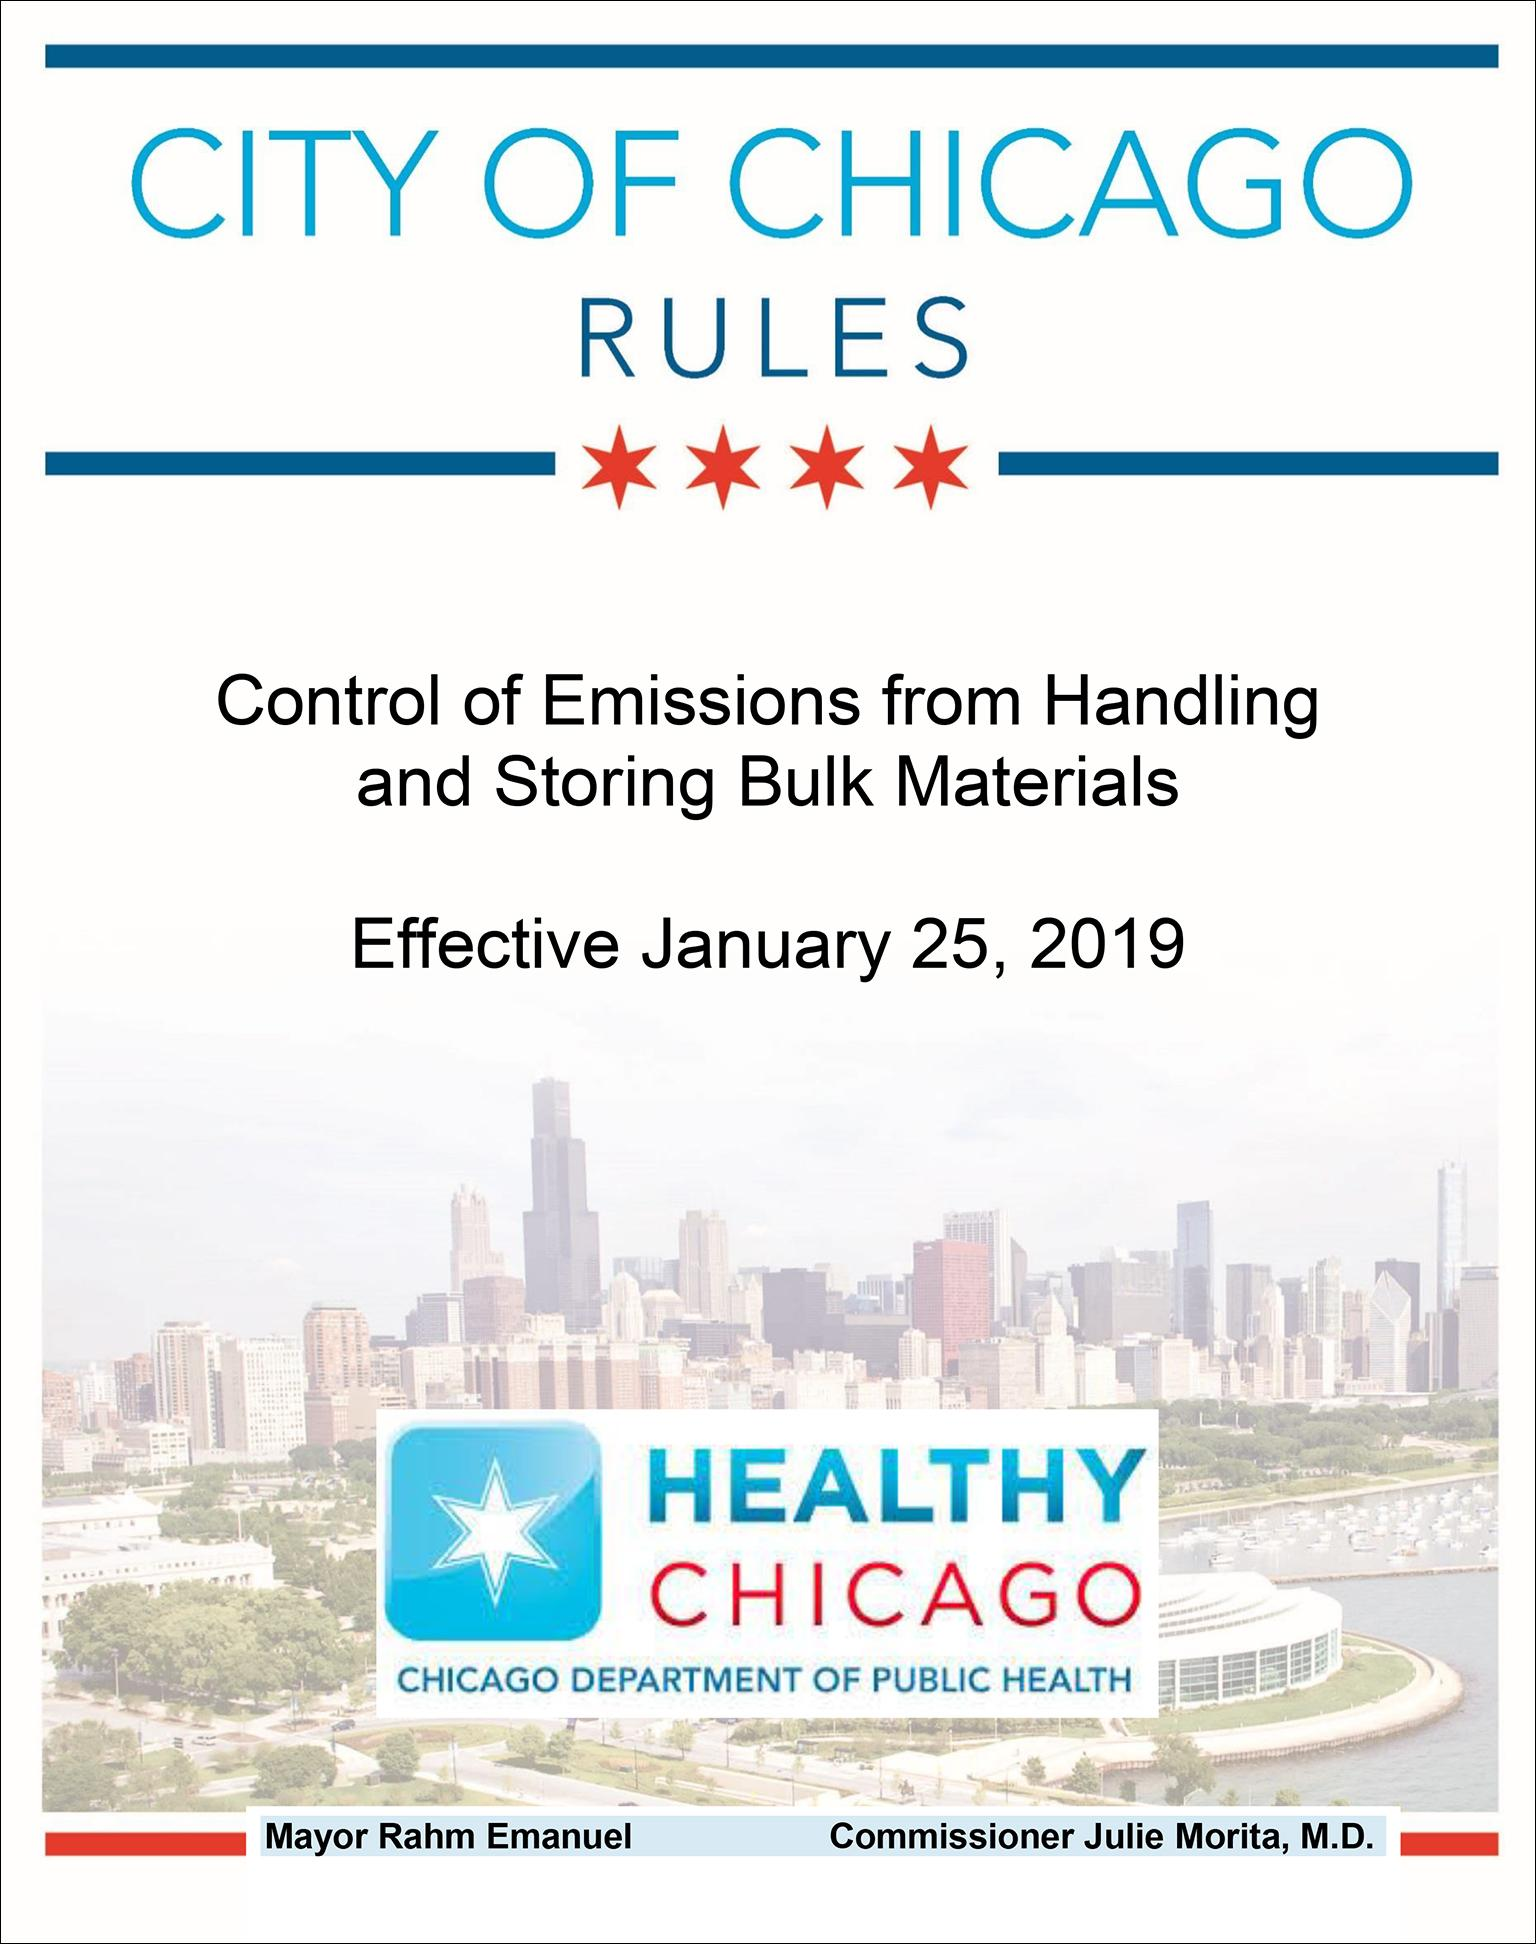 Document: Rules for controlling emissions from handling and storing bulk materials (Chicago Department of Public Health)